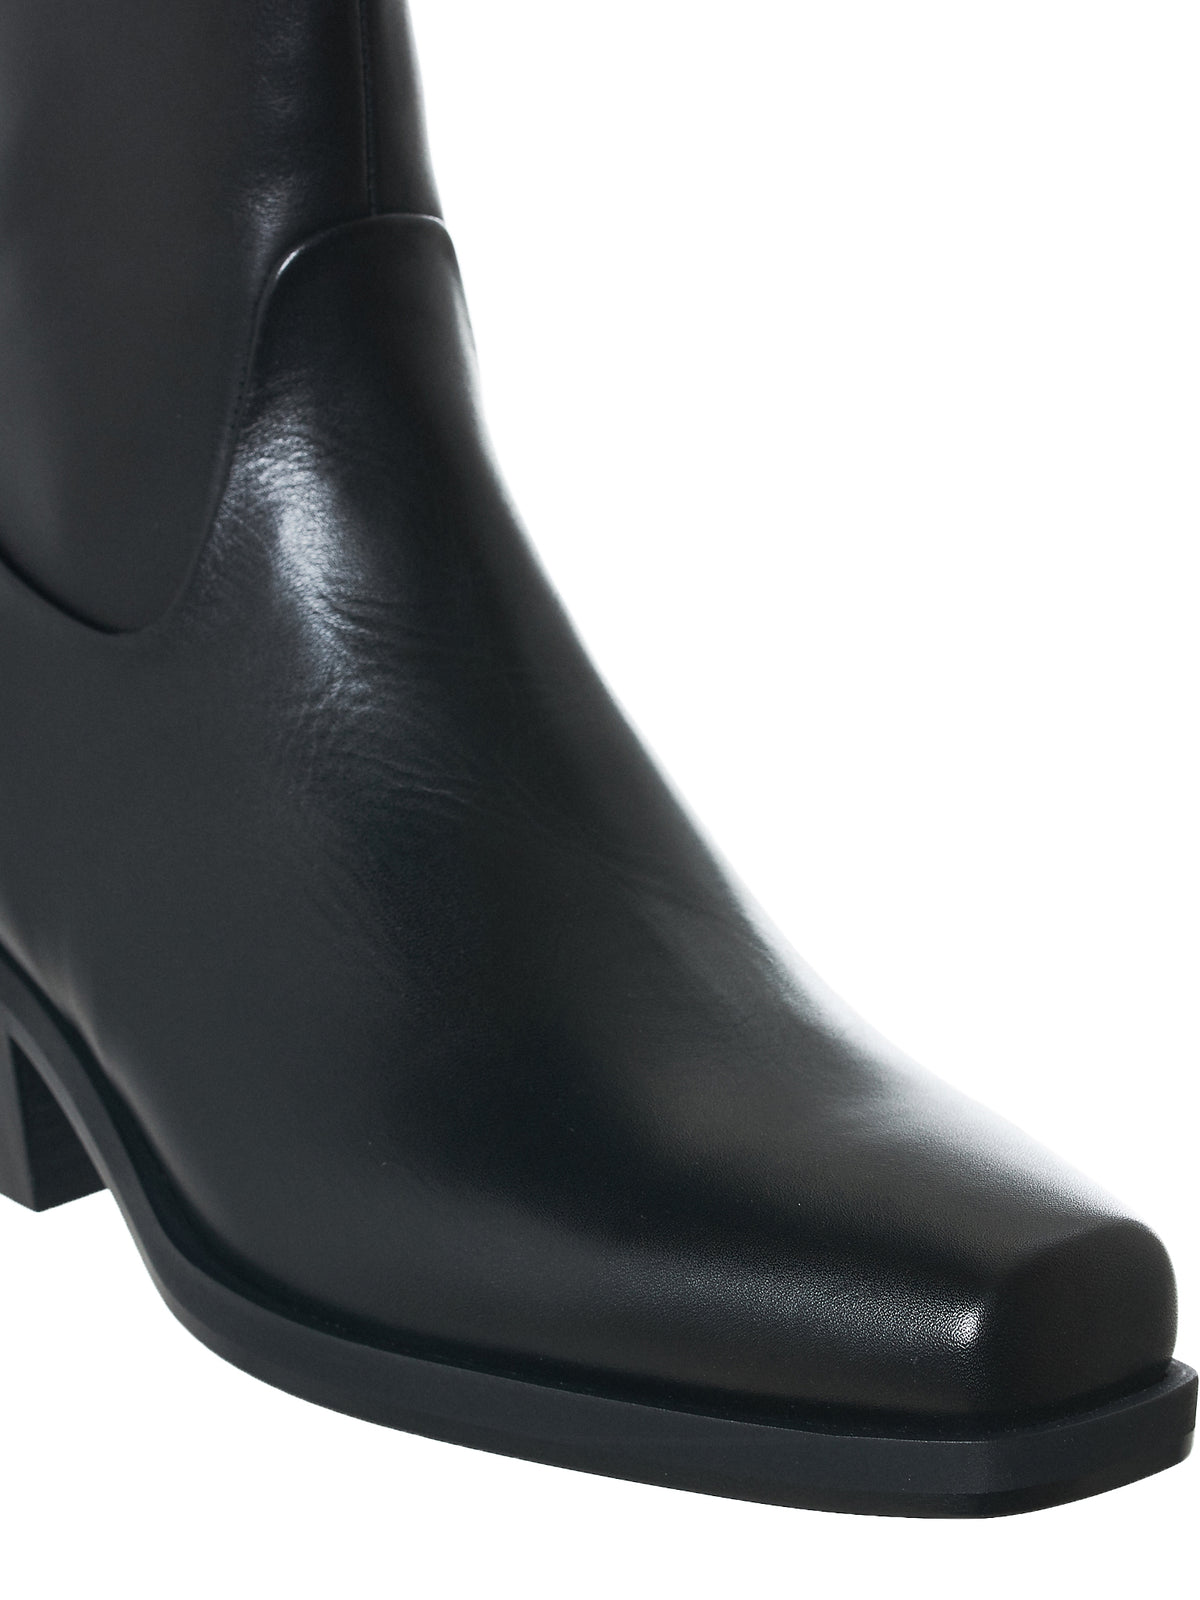 MISBHV Leather Boots - Hlorenzo Detail 2